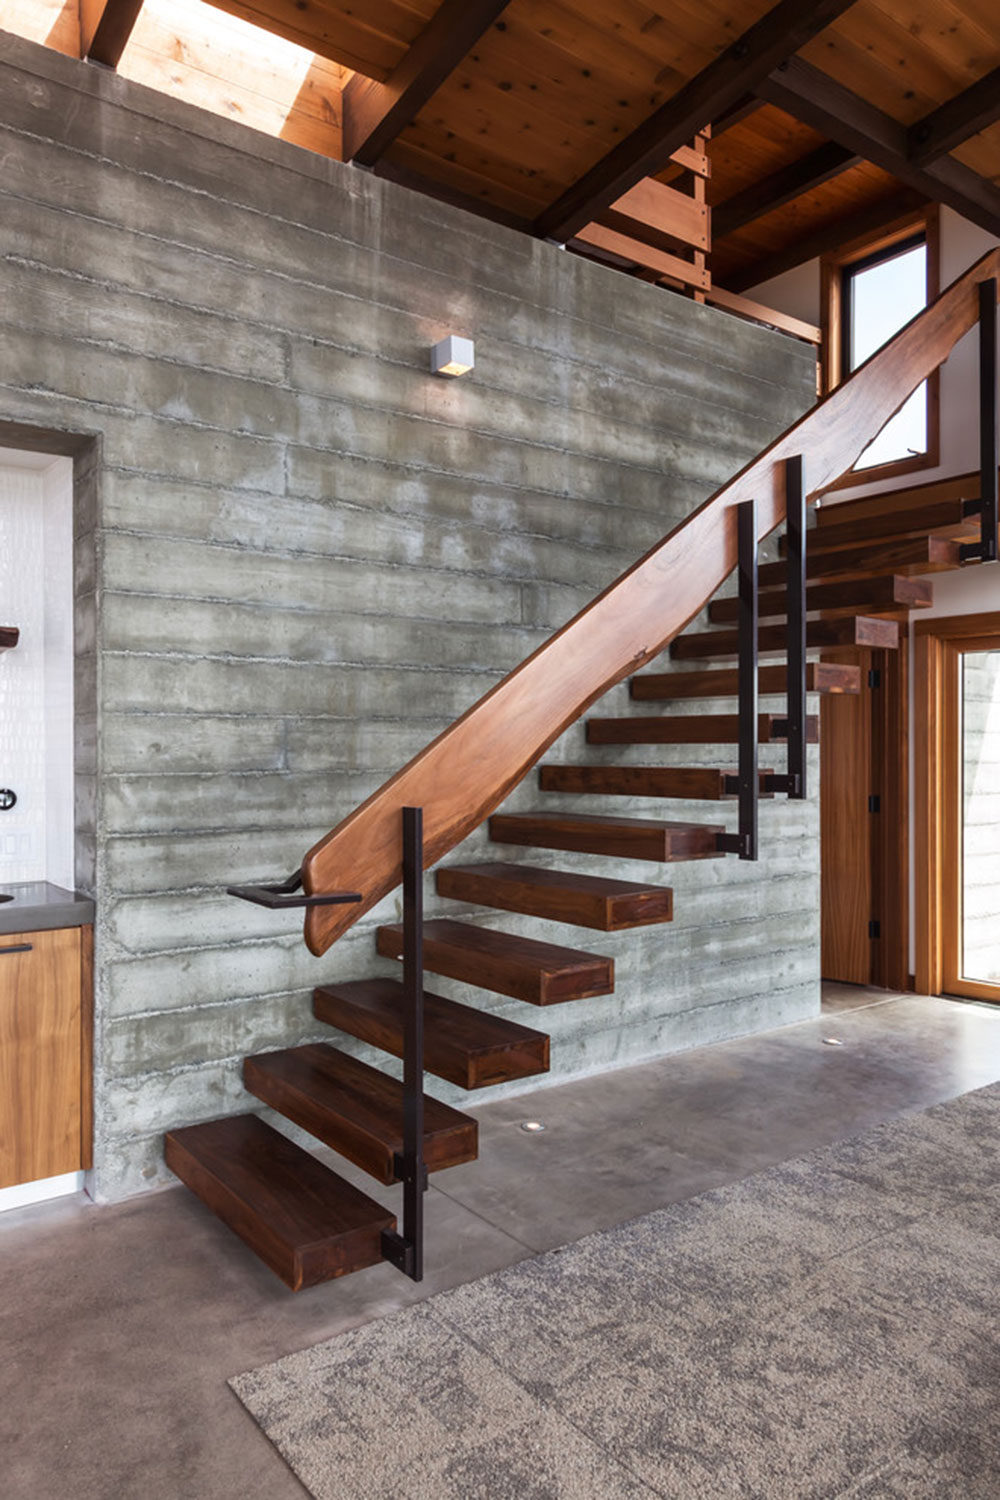 Modern and Exquisite Floating Staircase2 Modern and exquisite floating staircase designs